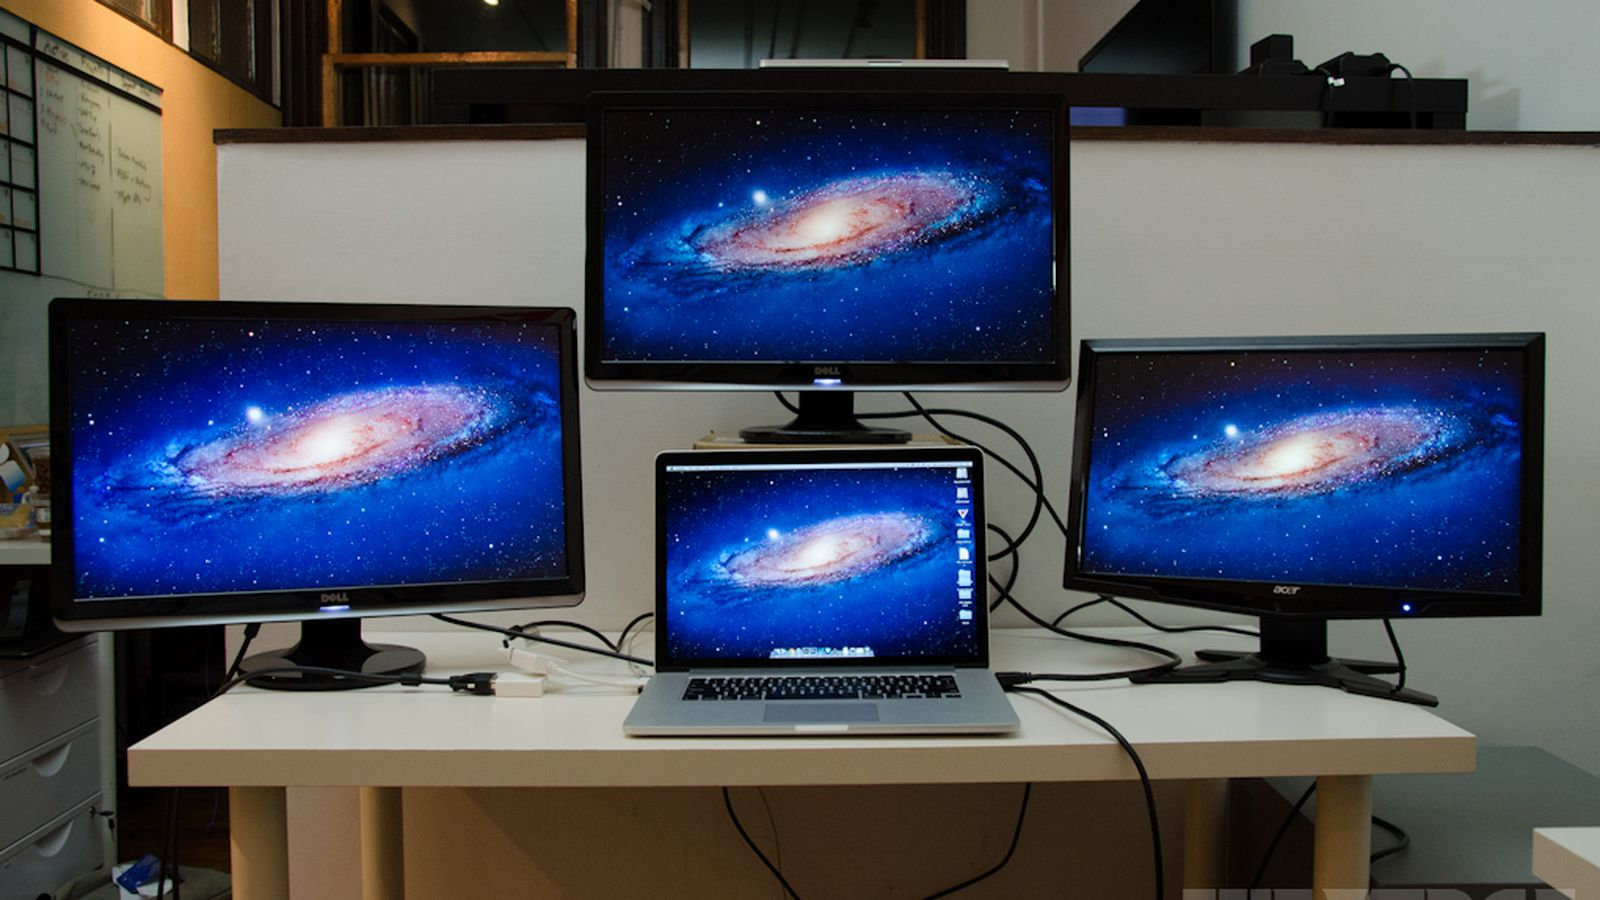 Macbook Pro With Retina Display Can Drive Four Screens